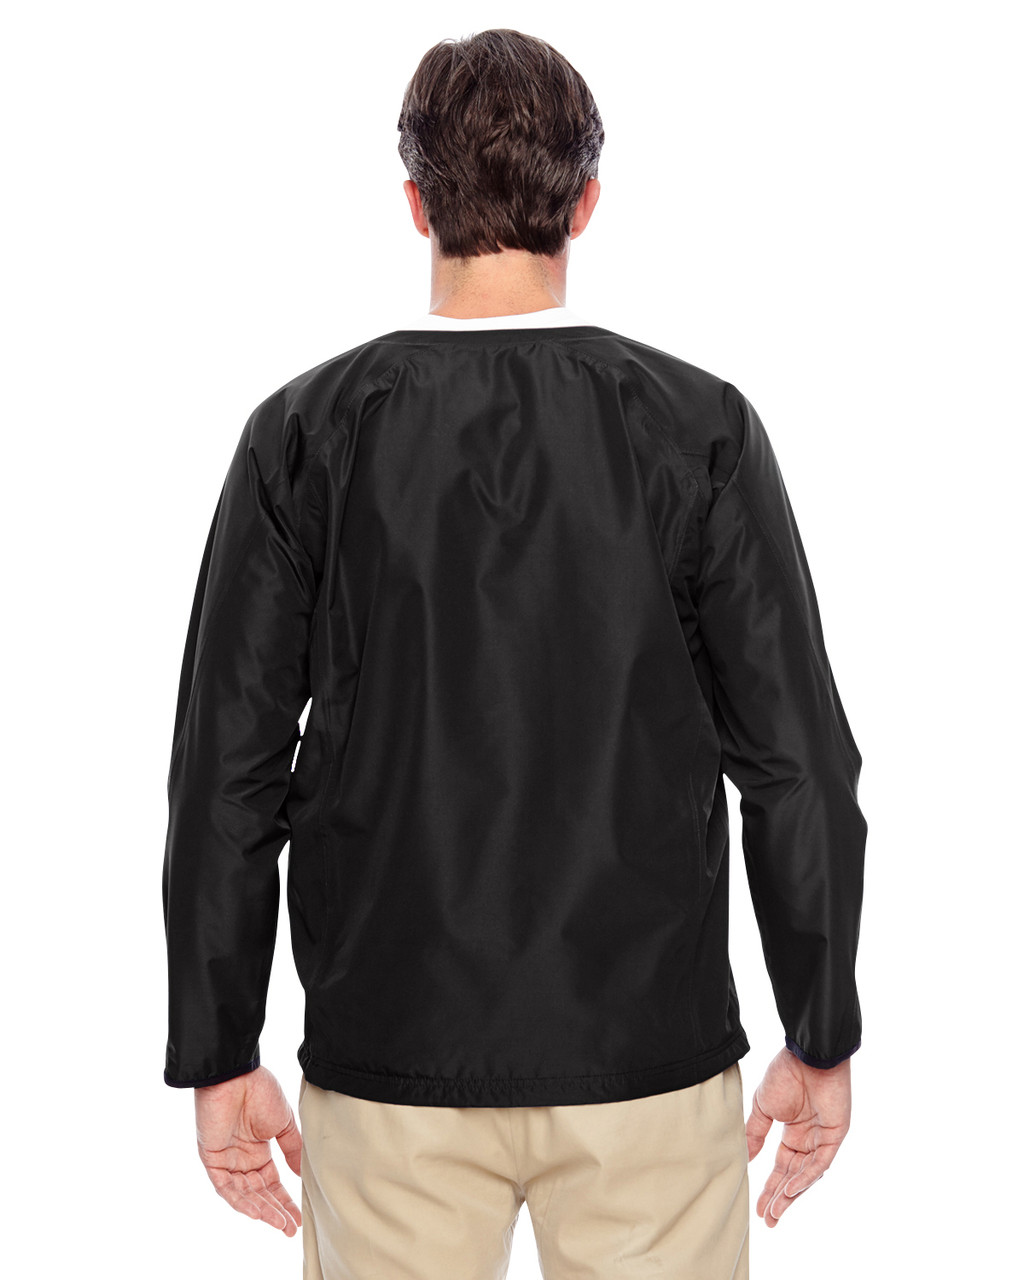 Black-back TT84 Team 365 Dominator Waterproof Windshirt